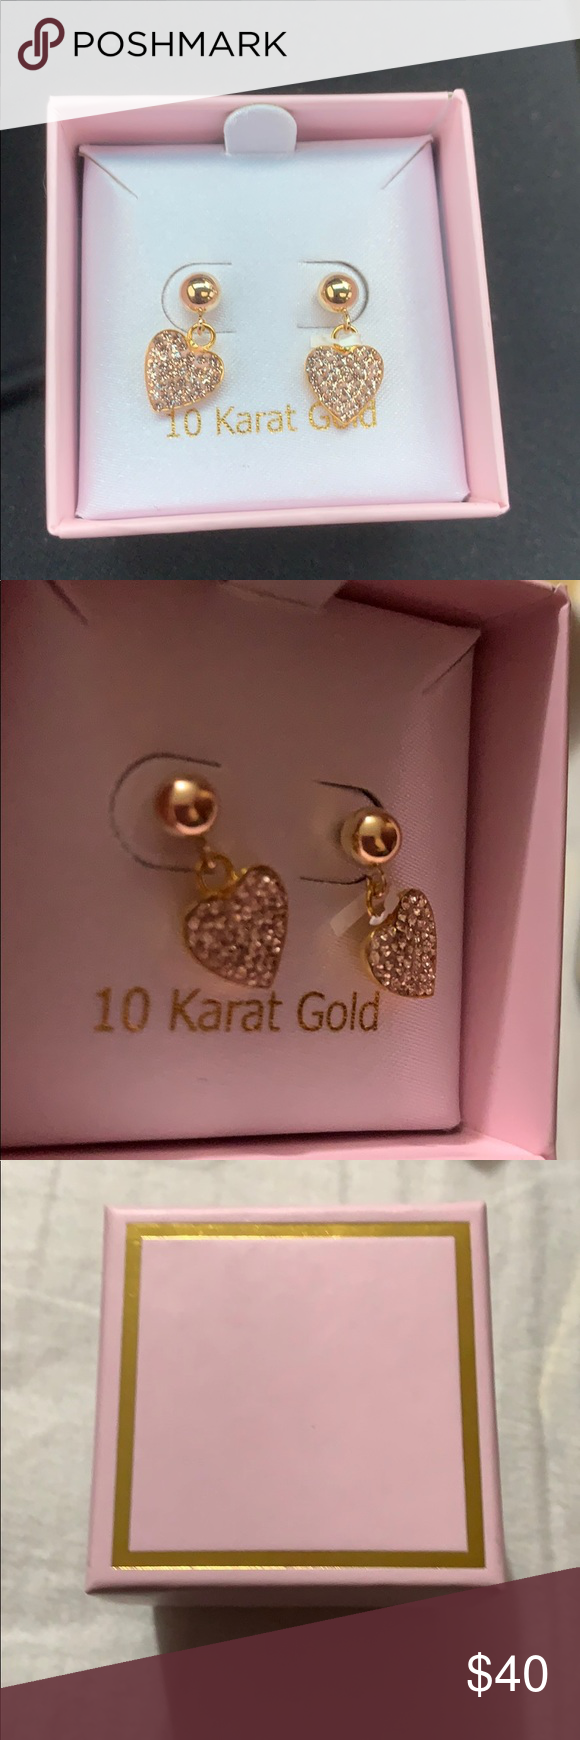 10 Karat Gold Earrings Nwt Gold Earrings 10 Things Gold